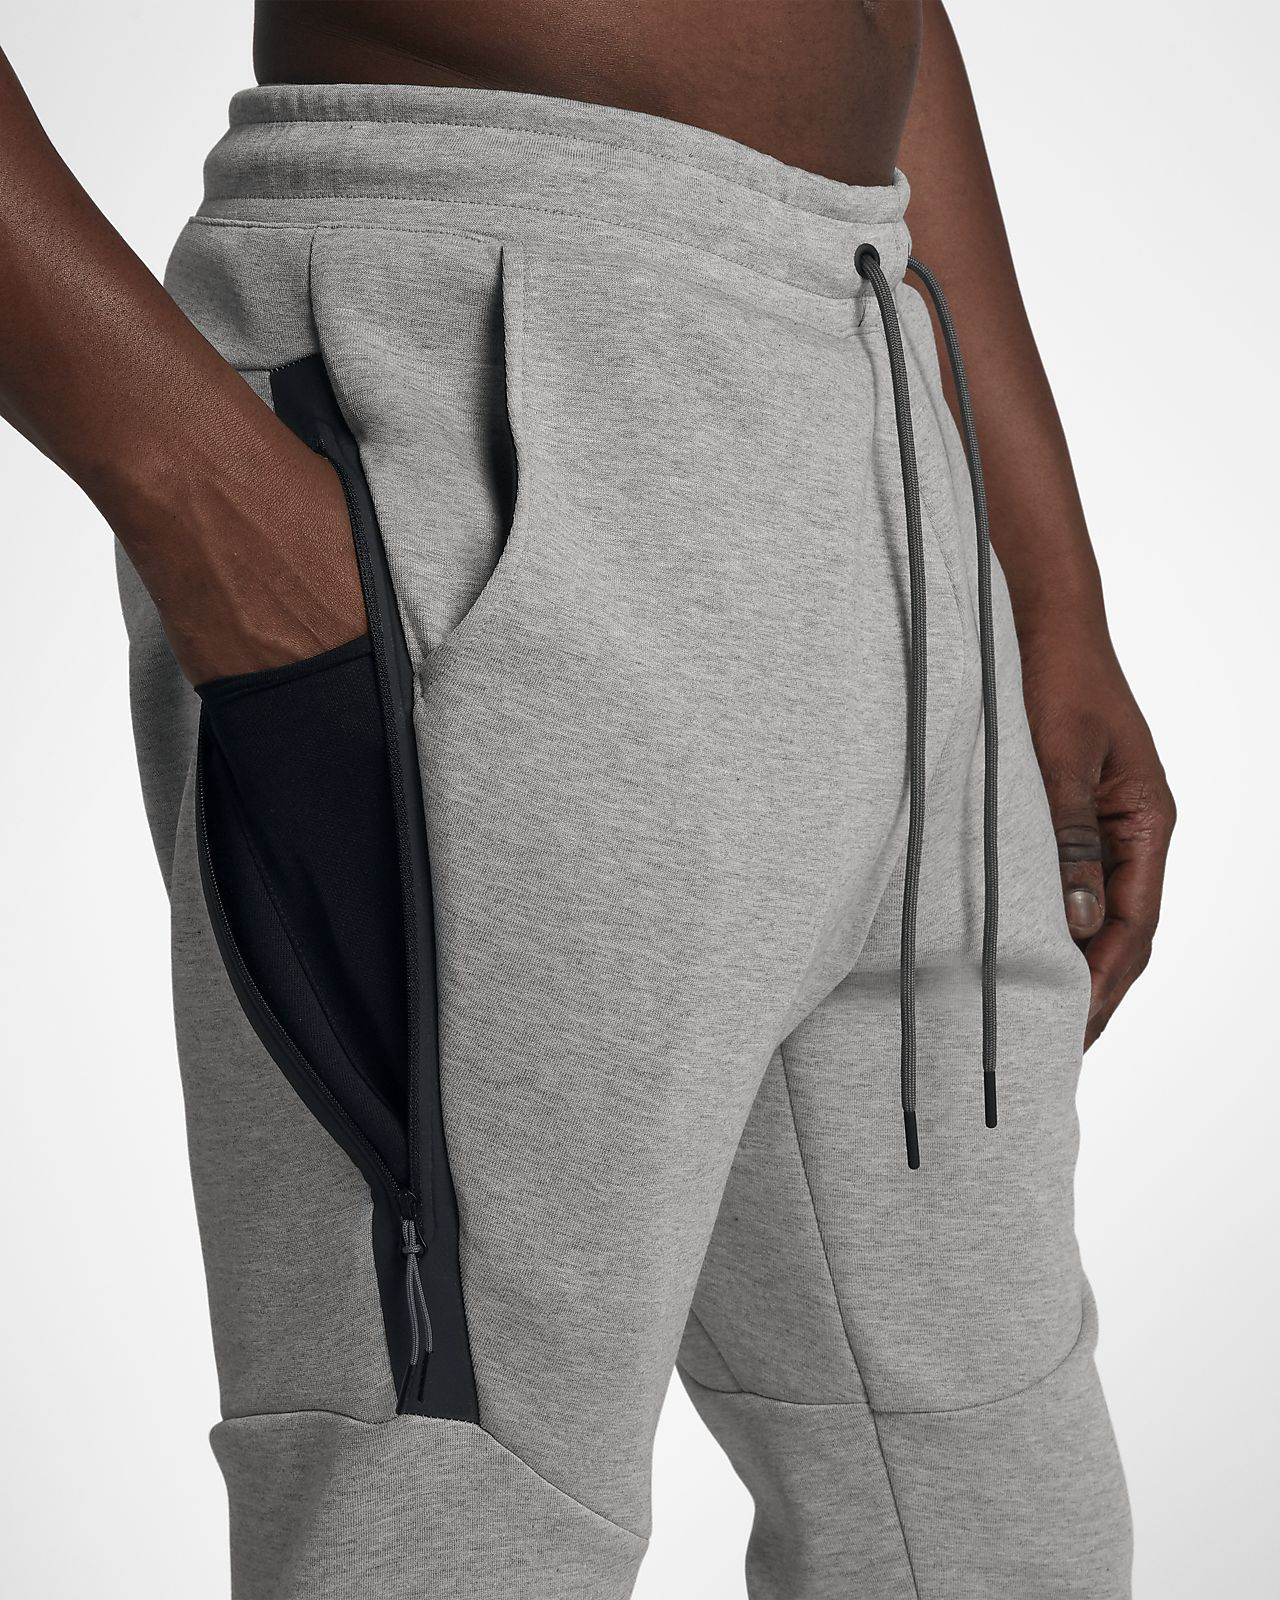 promo code 1884a f715a ... Nike Sportswear Tech Fleece Men s Joggers